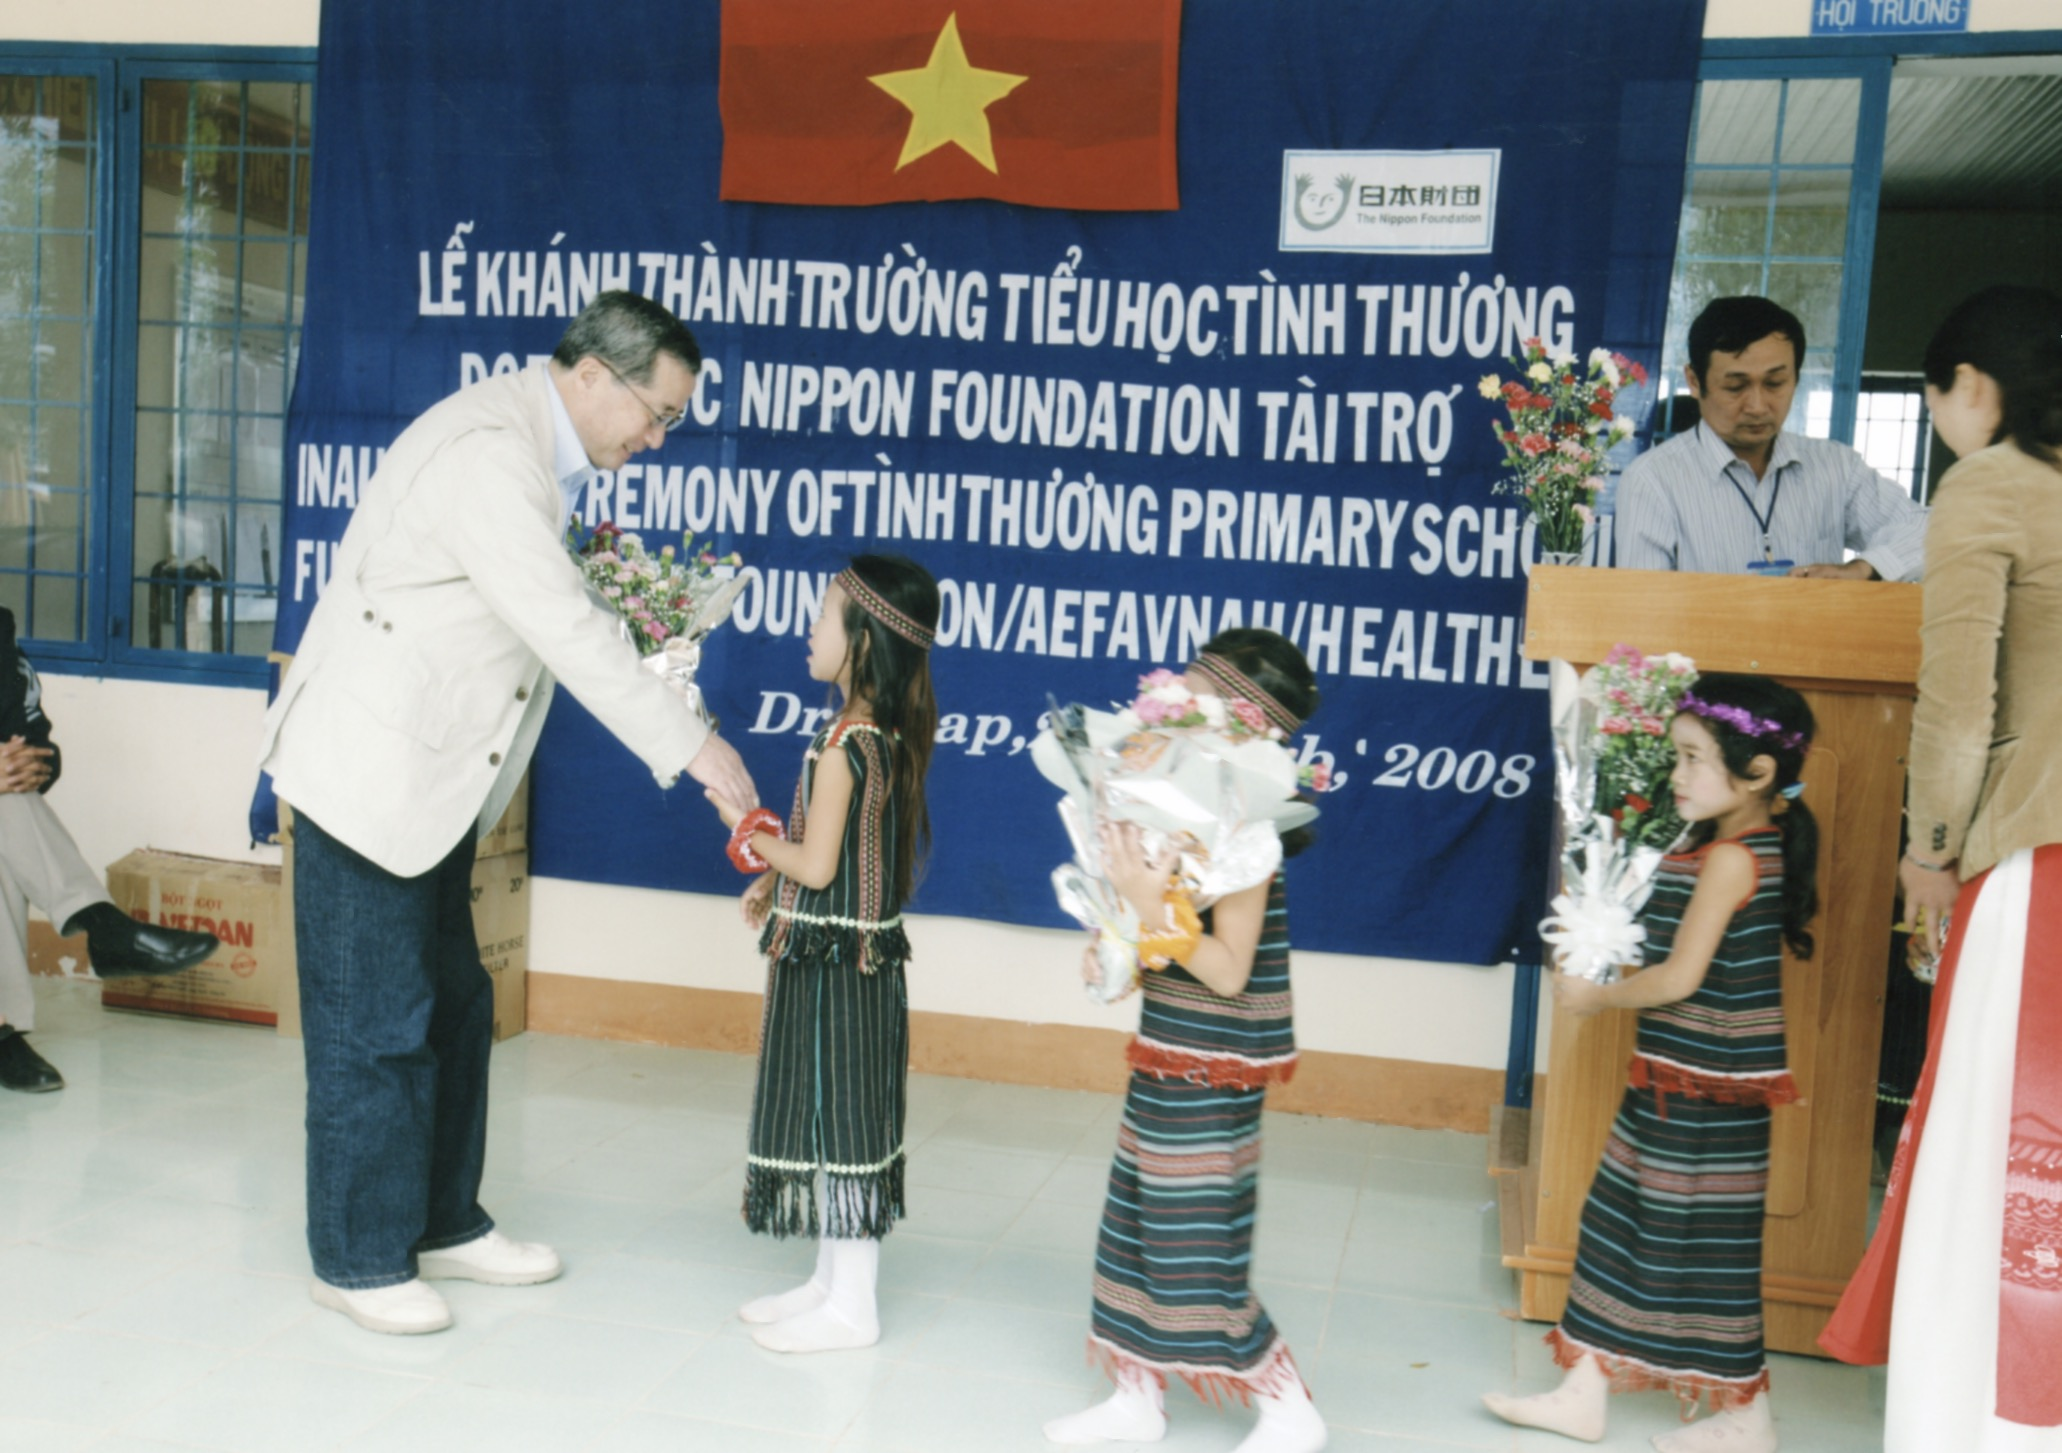 Opening Ceremony for a Primary School in Kontum Prov. (Central Highland) 2008 - 14.jpeg